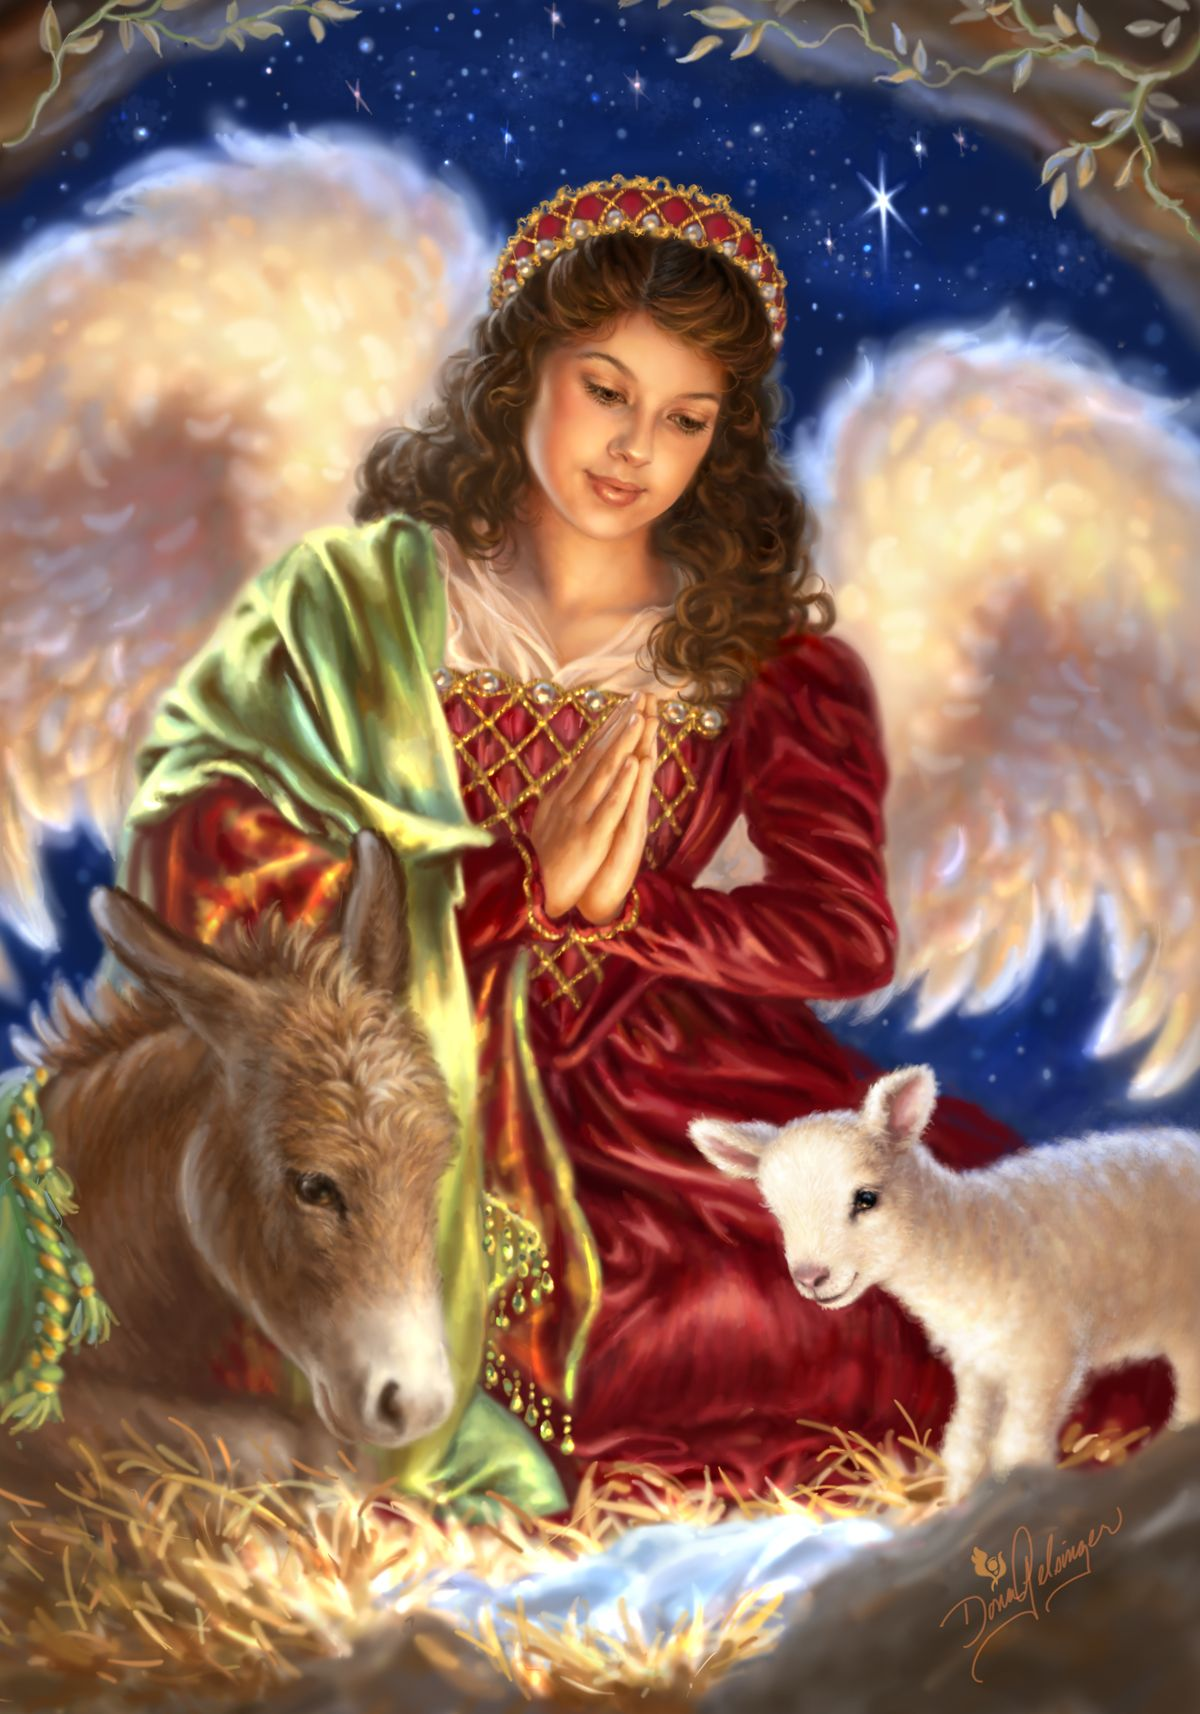 Angels Beauty Colored Faces: AWAY IN A MANGER BY DONA GELSINGER